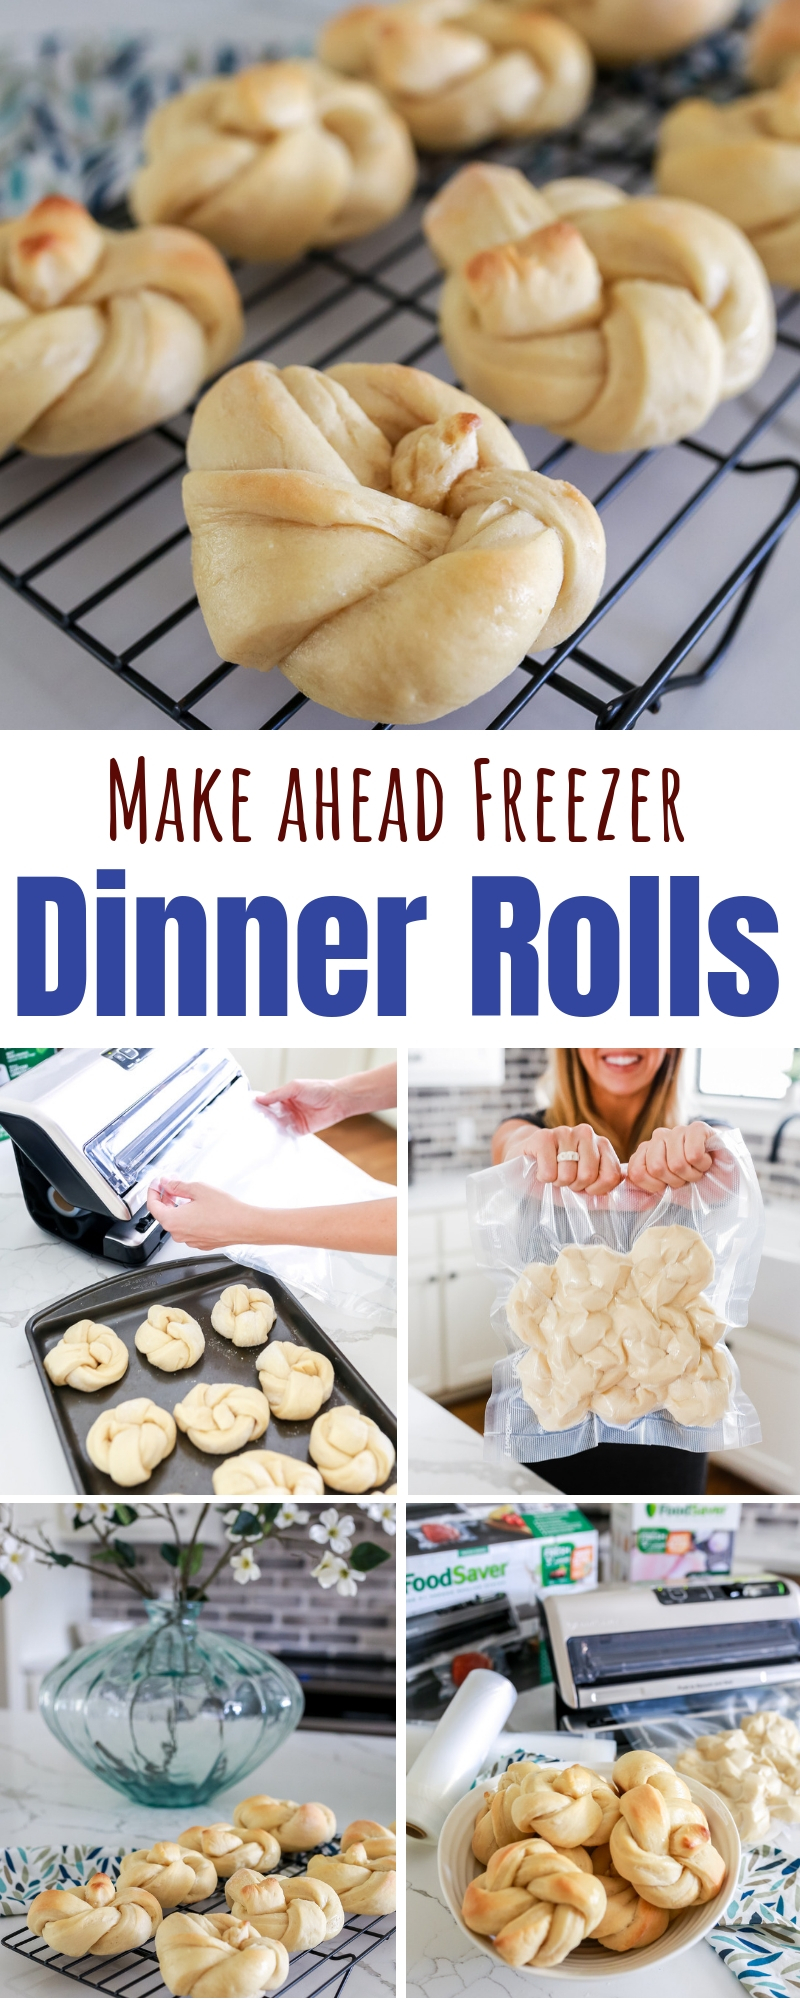 Freezer rolls: fast & easy recipe for delicious Dinner Rolls that you can make ahead of time and then freeze until you're ready to bake and serve.